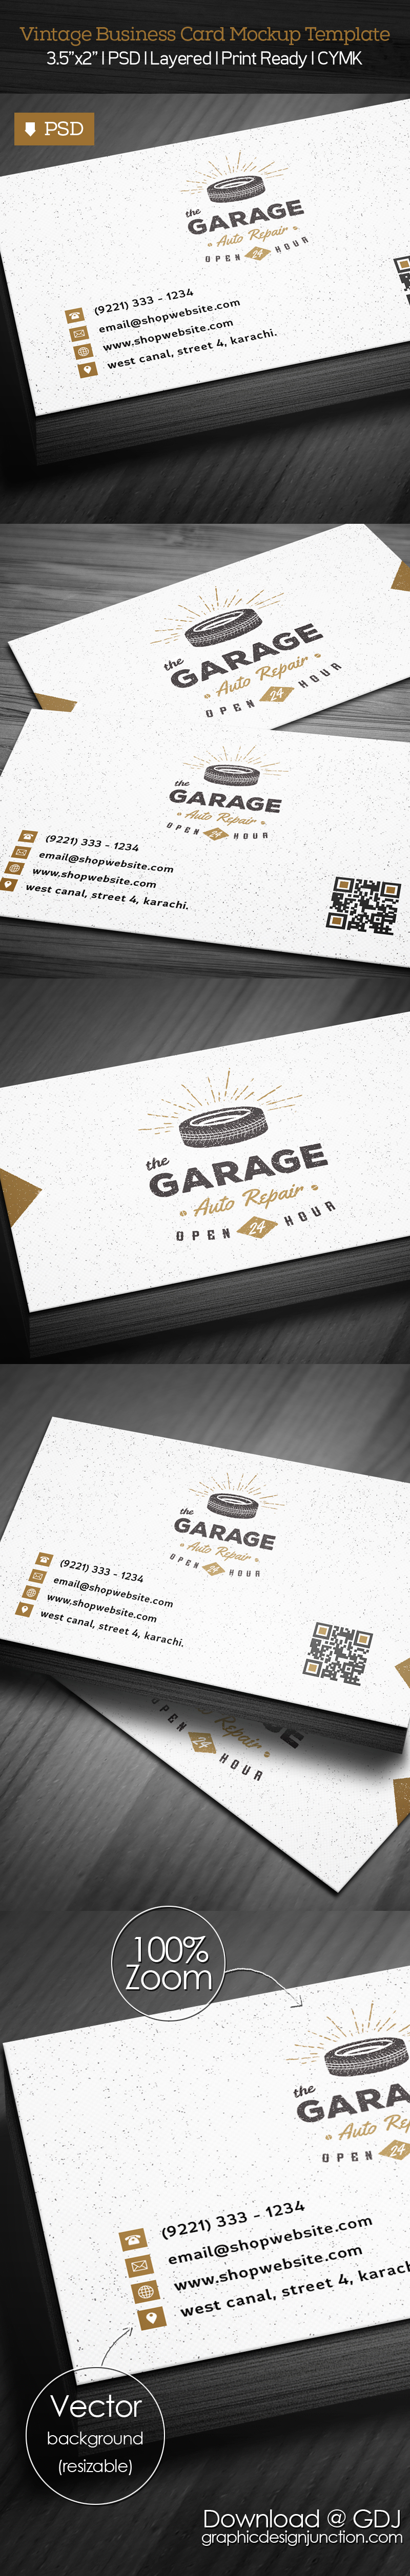 Free Vintage Business Card PSD Template | Freebies | Graphic Design ...